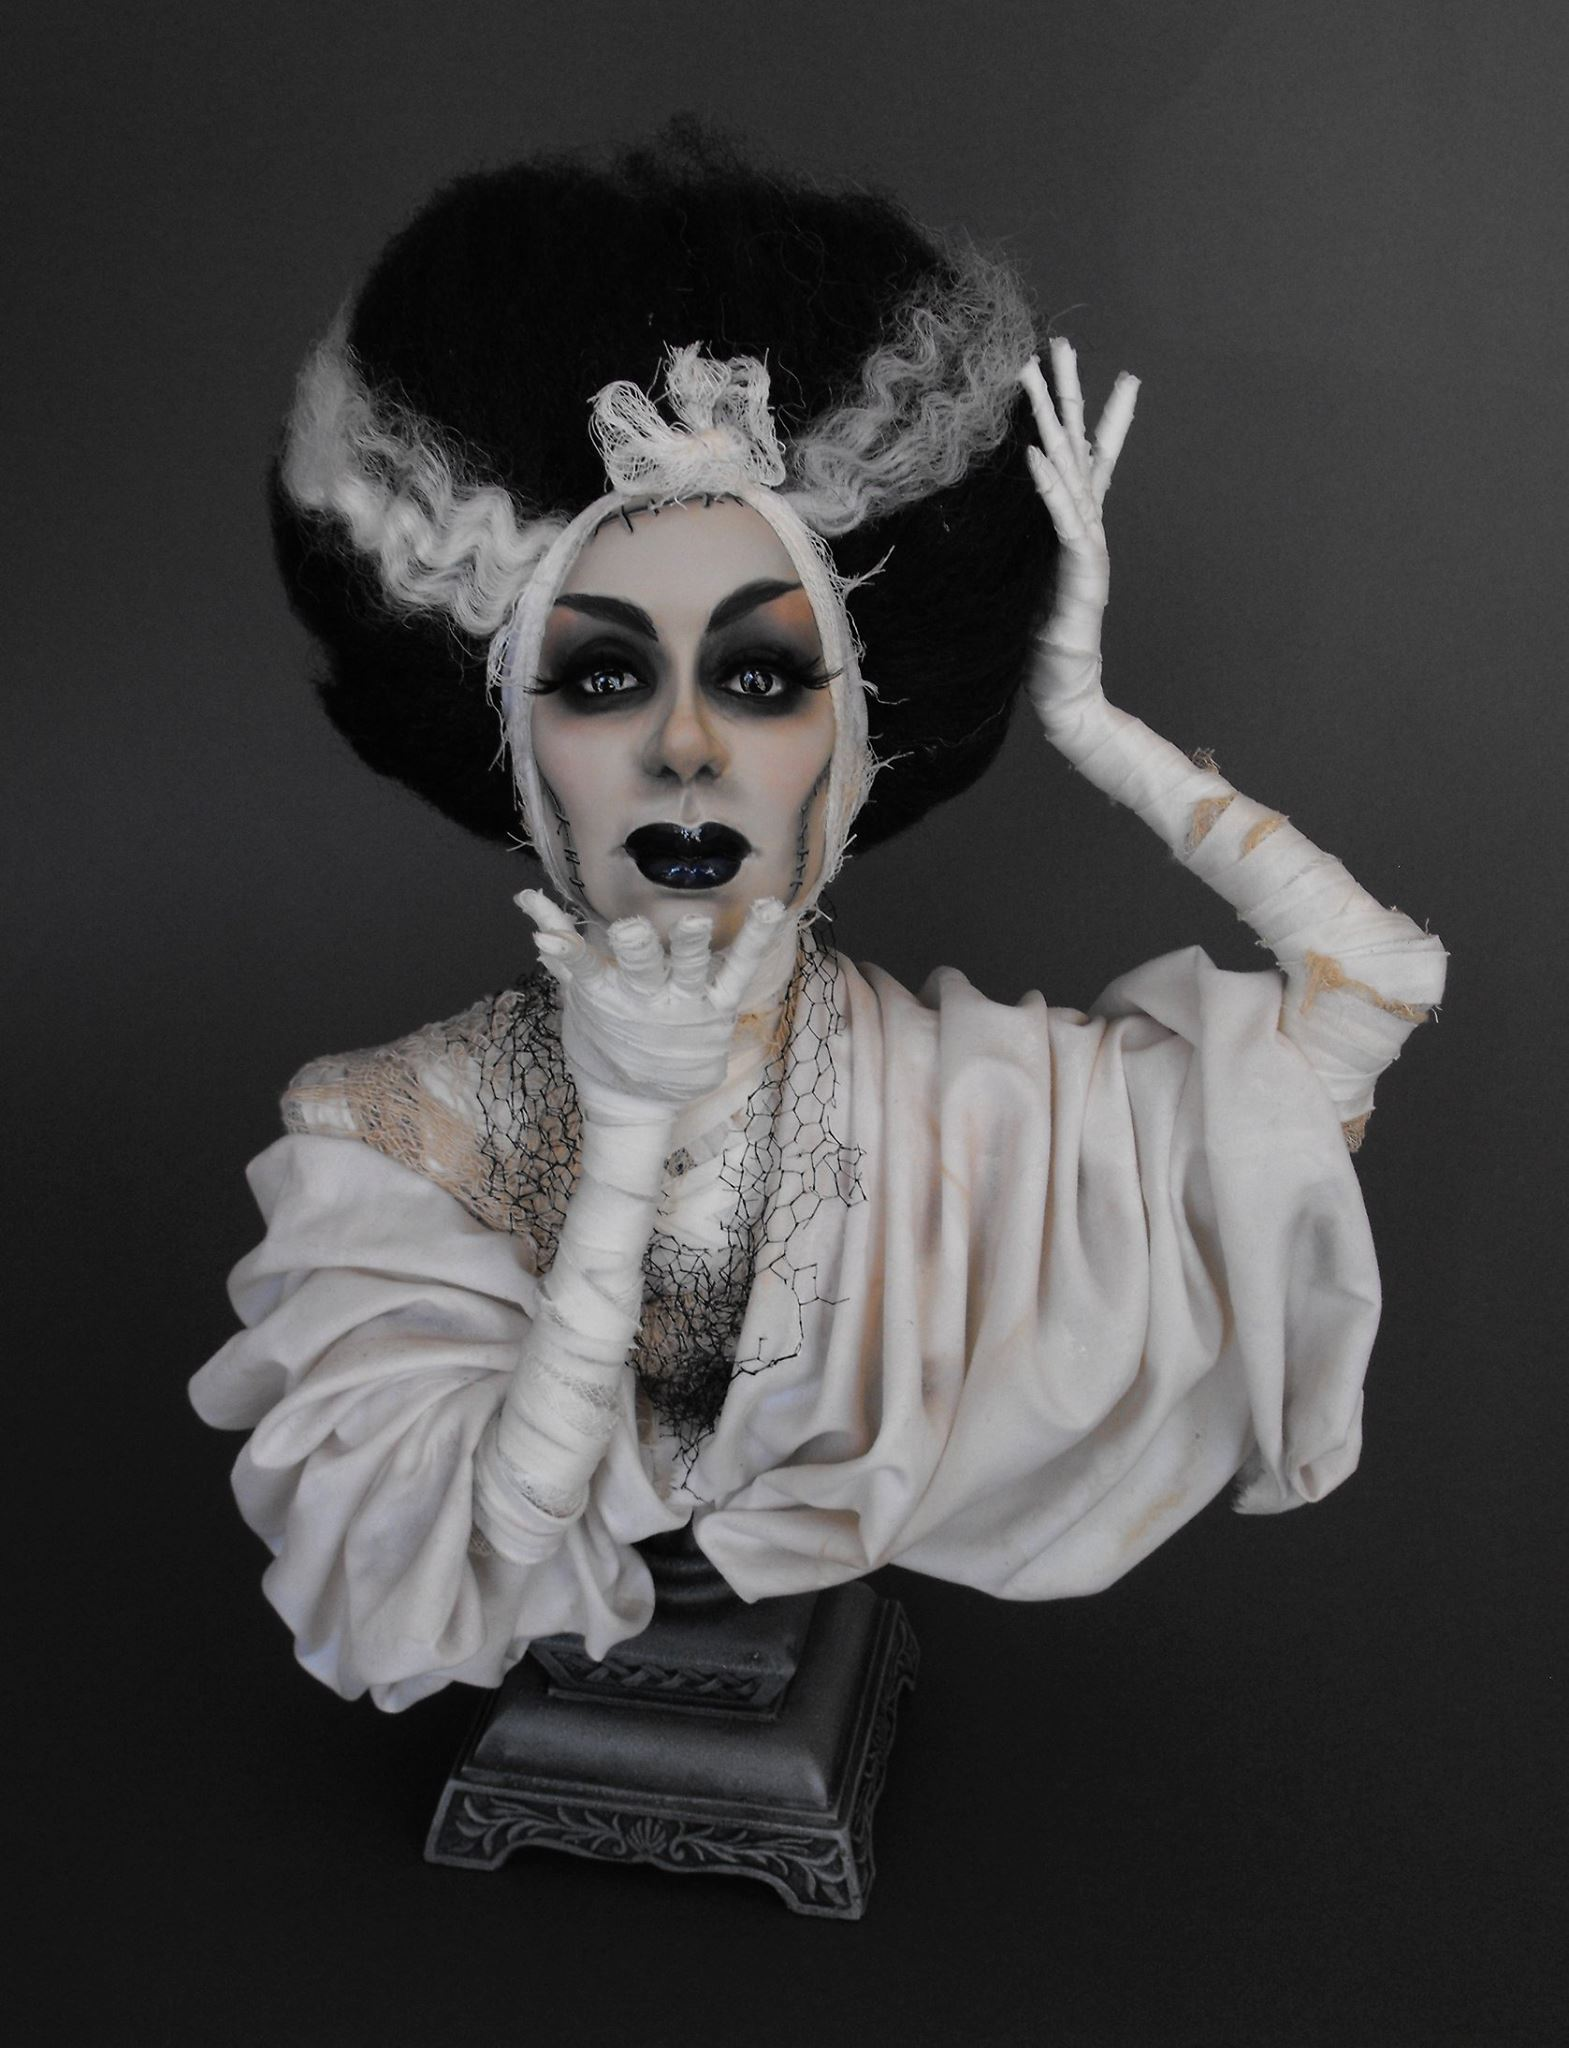 Dustin Poche – The Bride of Frankenstein Art doll